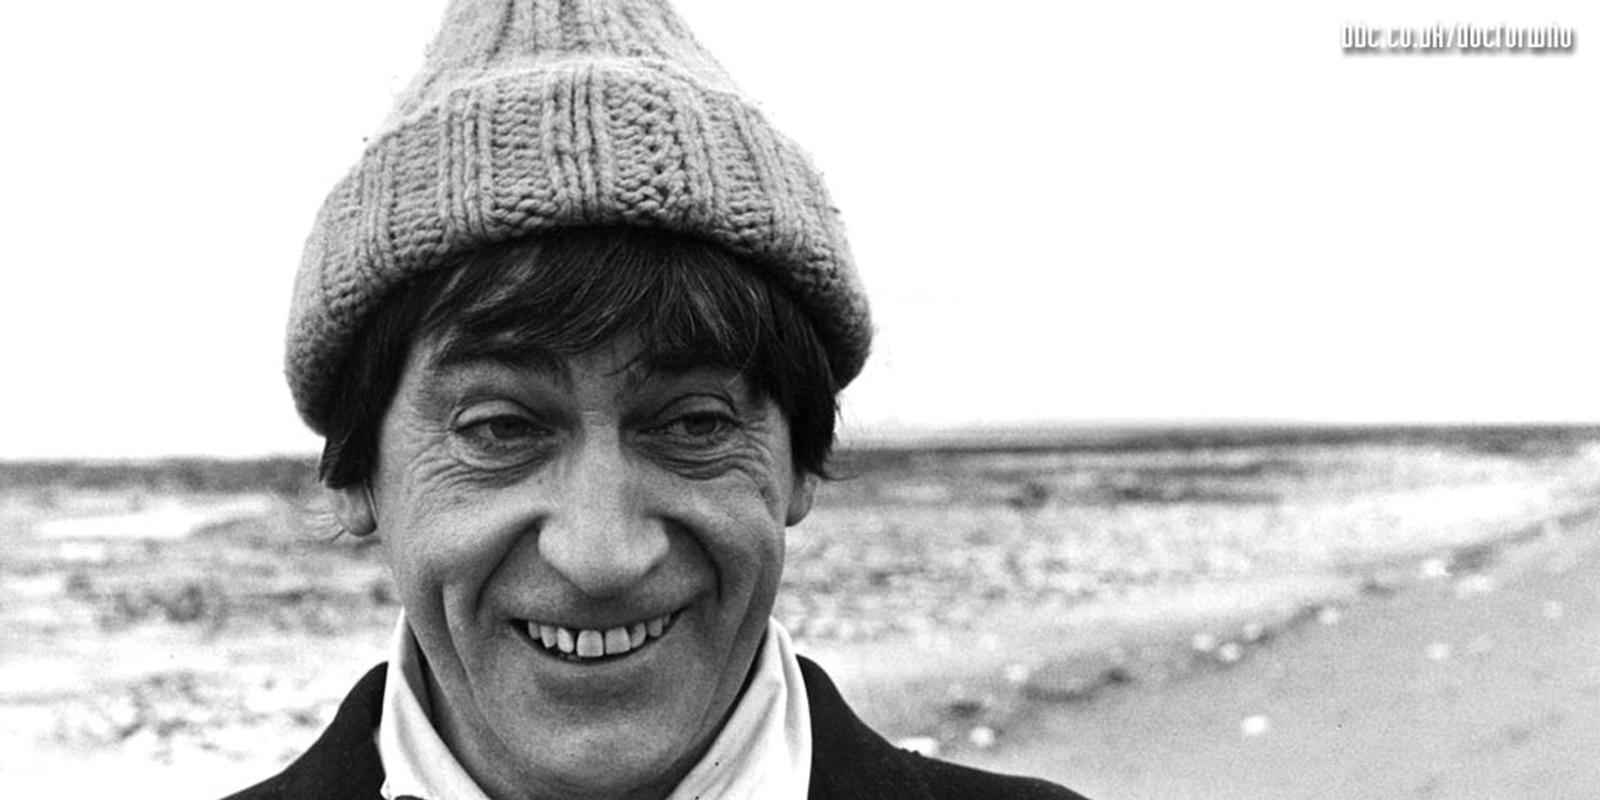 patrick troughton interview